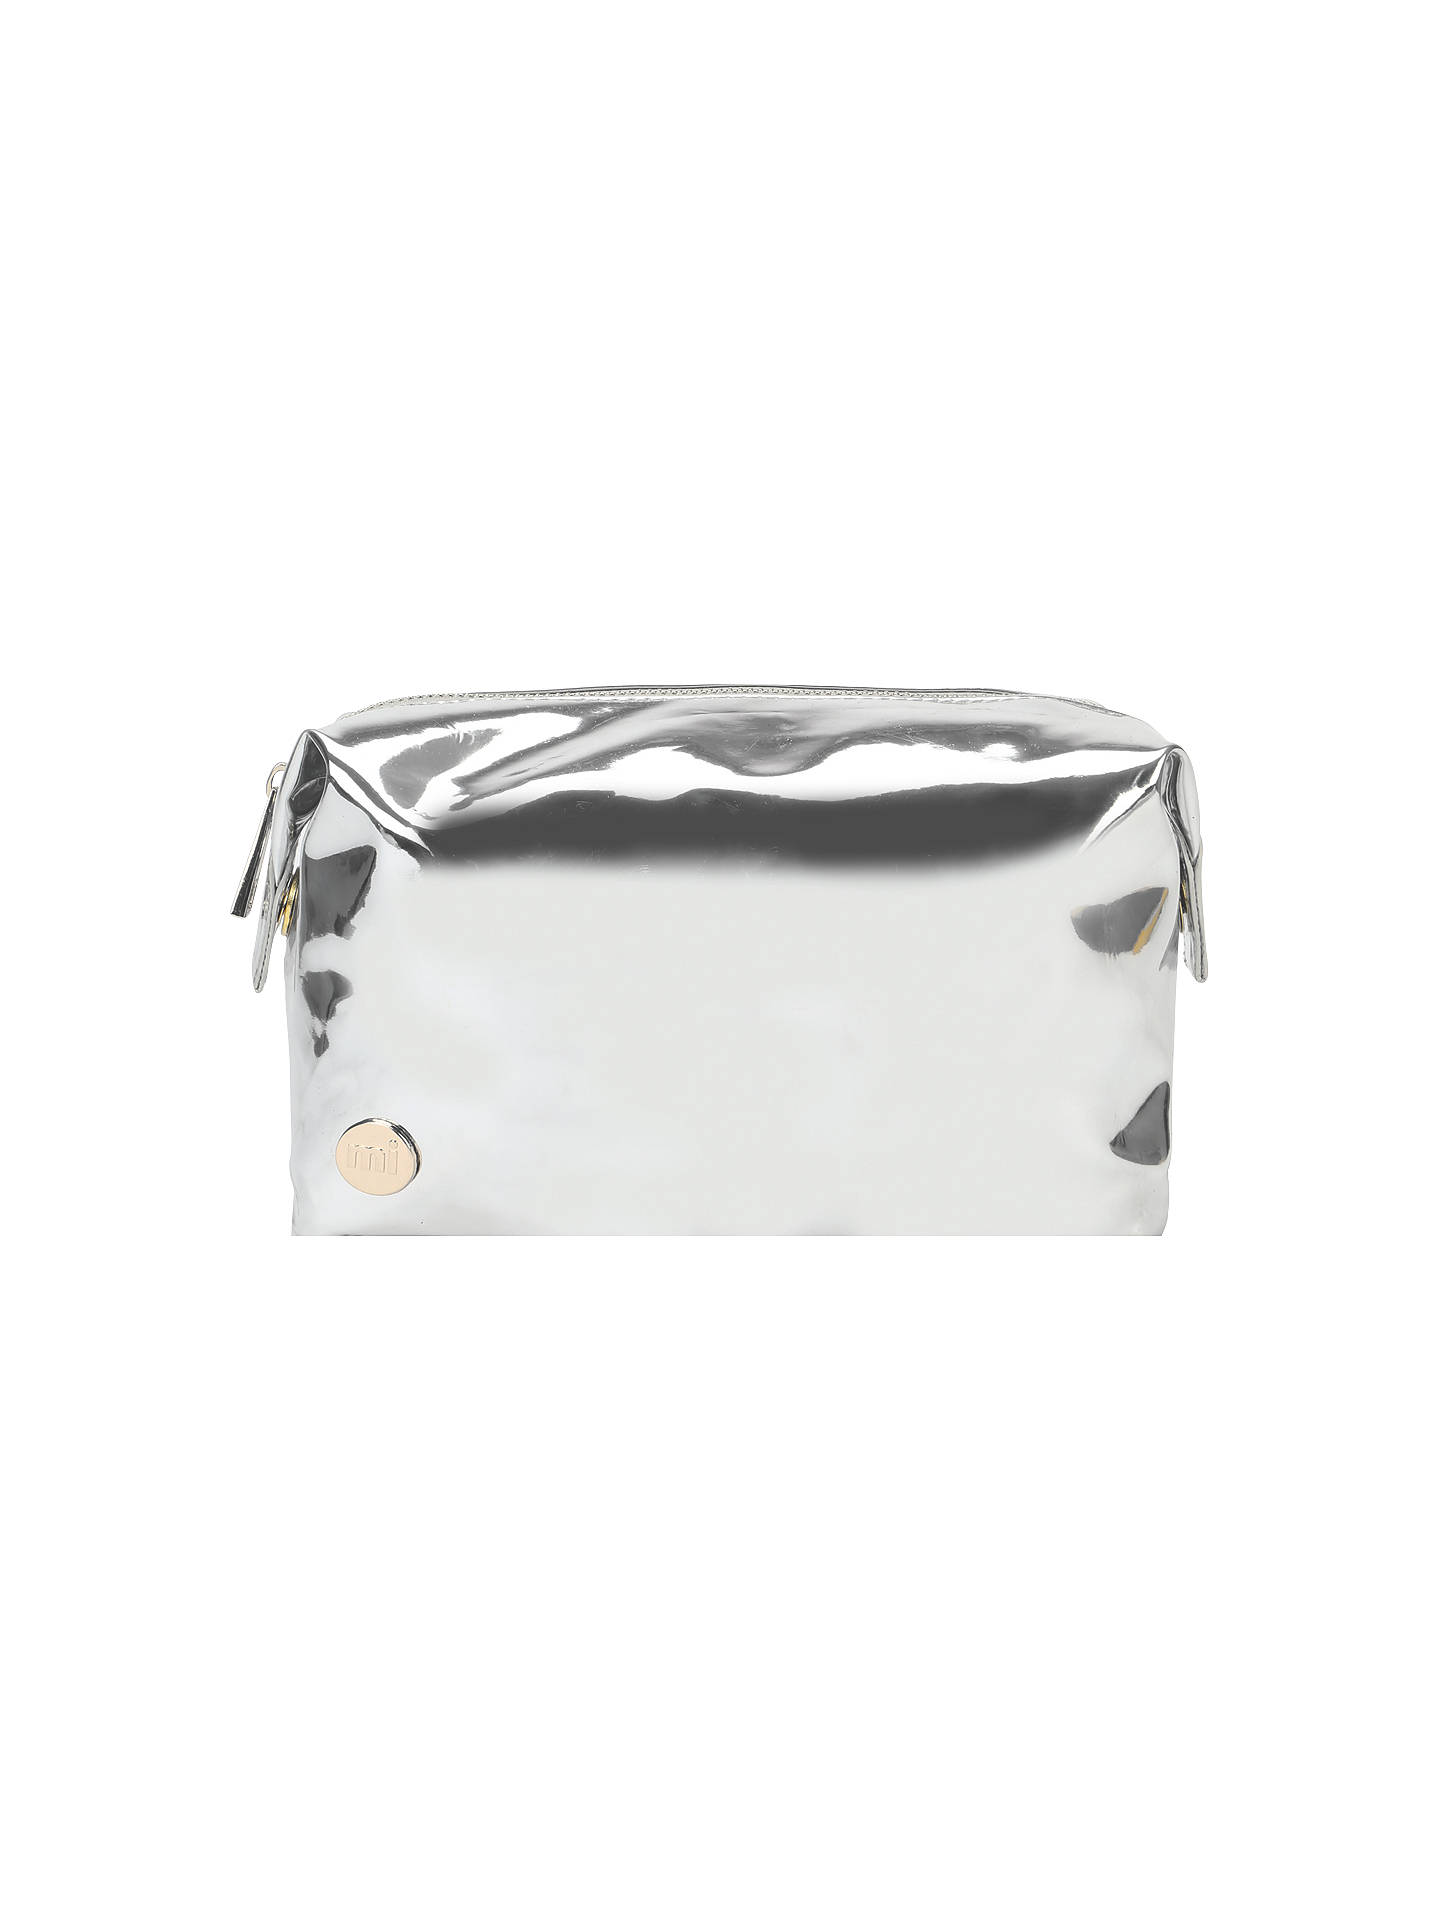 4a0311bf01 Buy Mi-Pac Mirrored Wash Bag